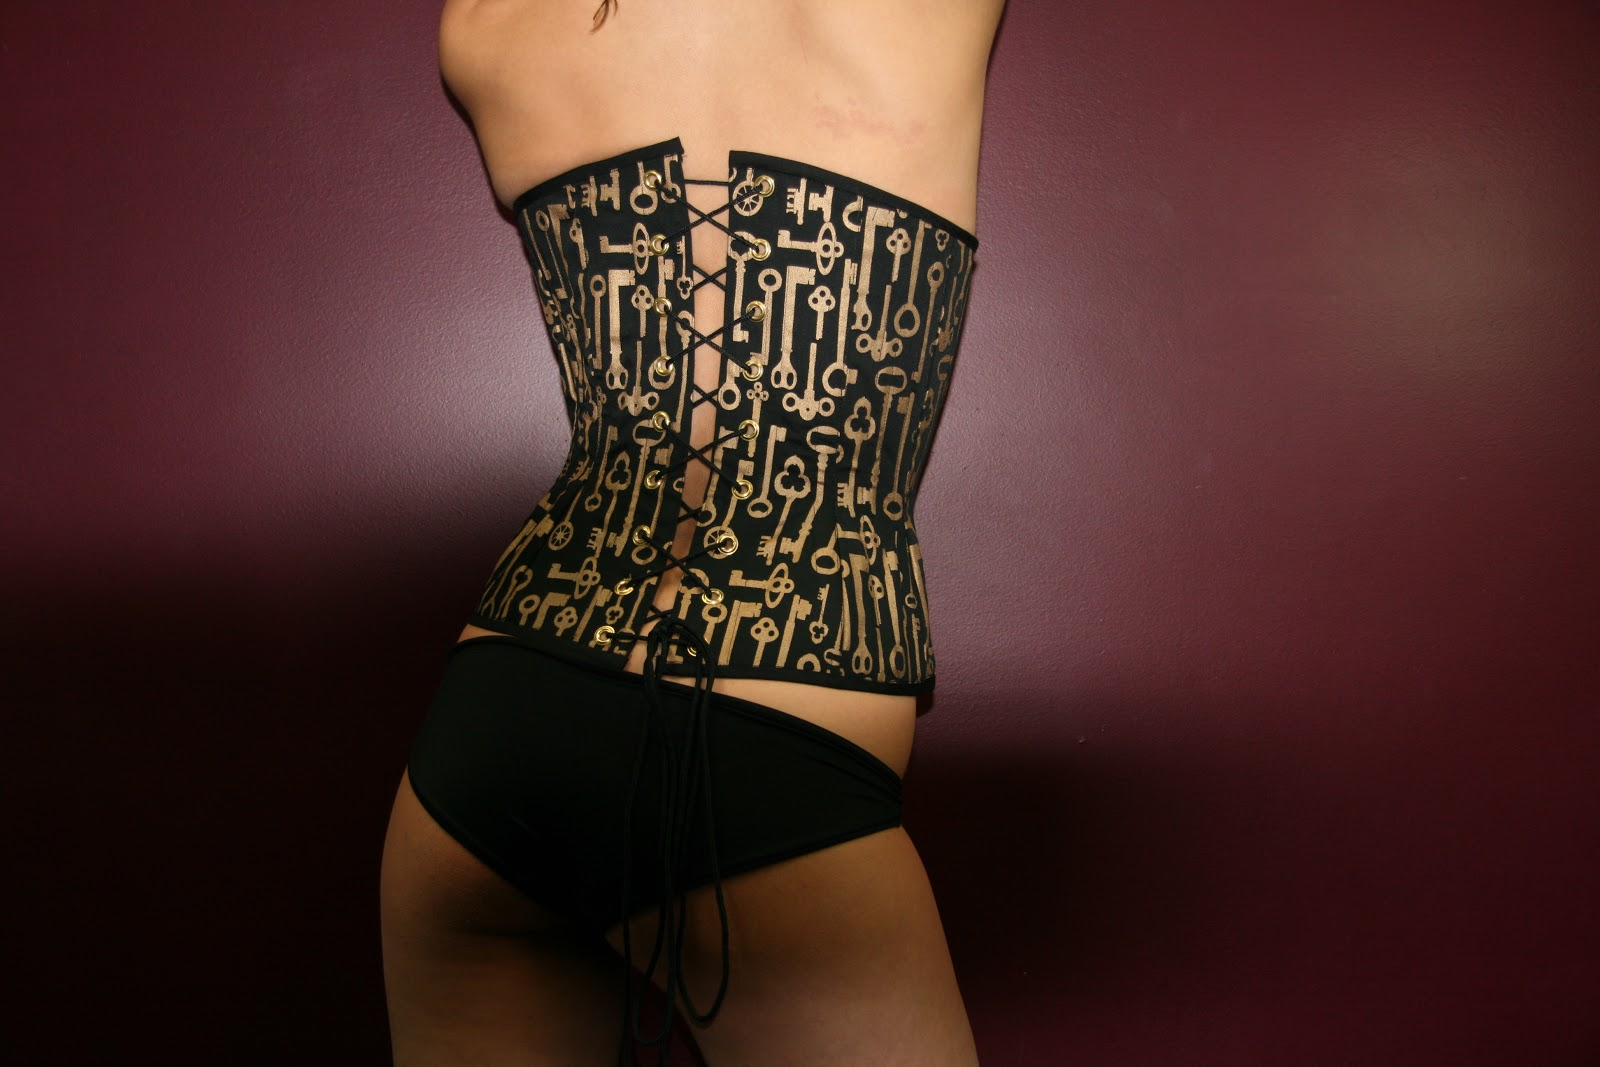 corset antique brass grommets and busk original screen printed antique    Antique Keyhole Tattoo